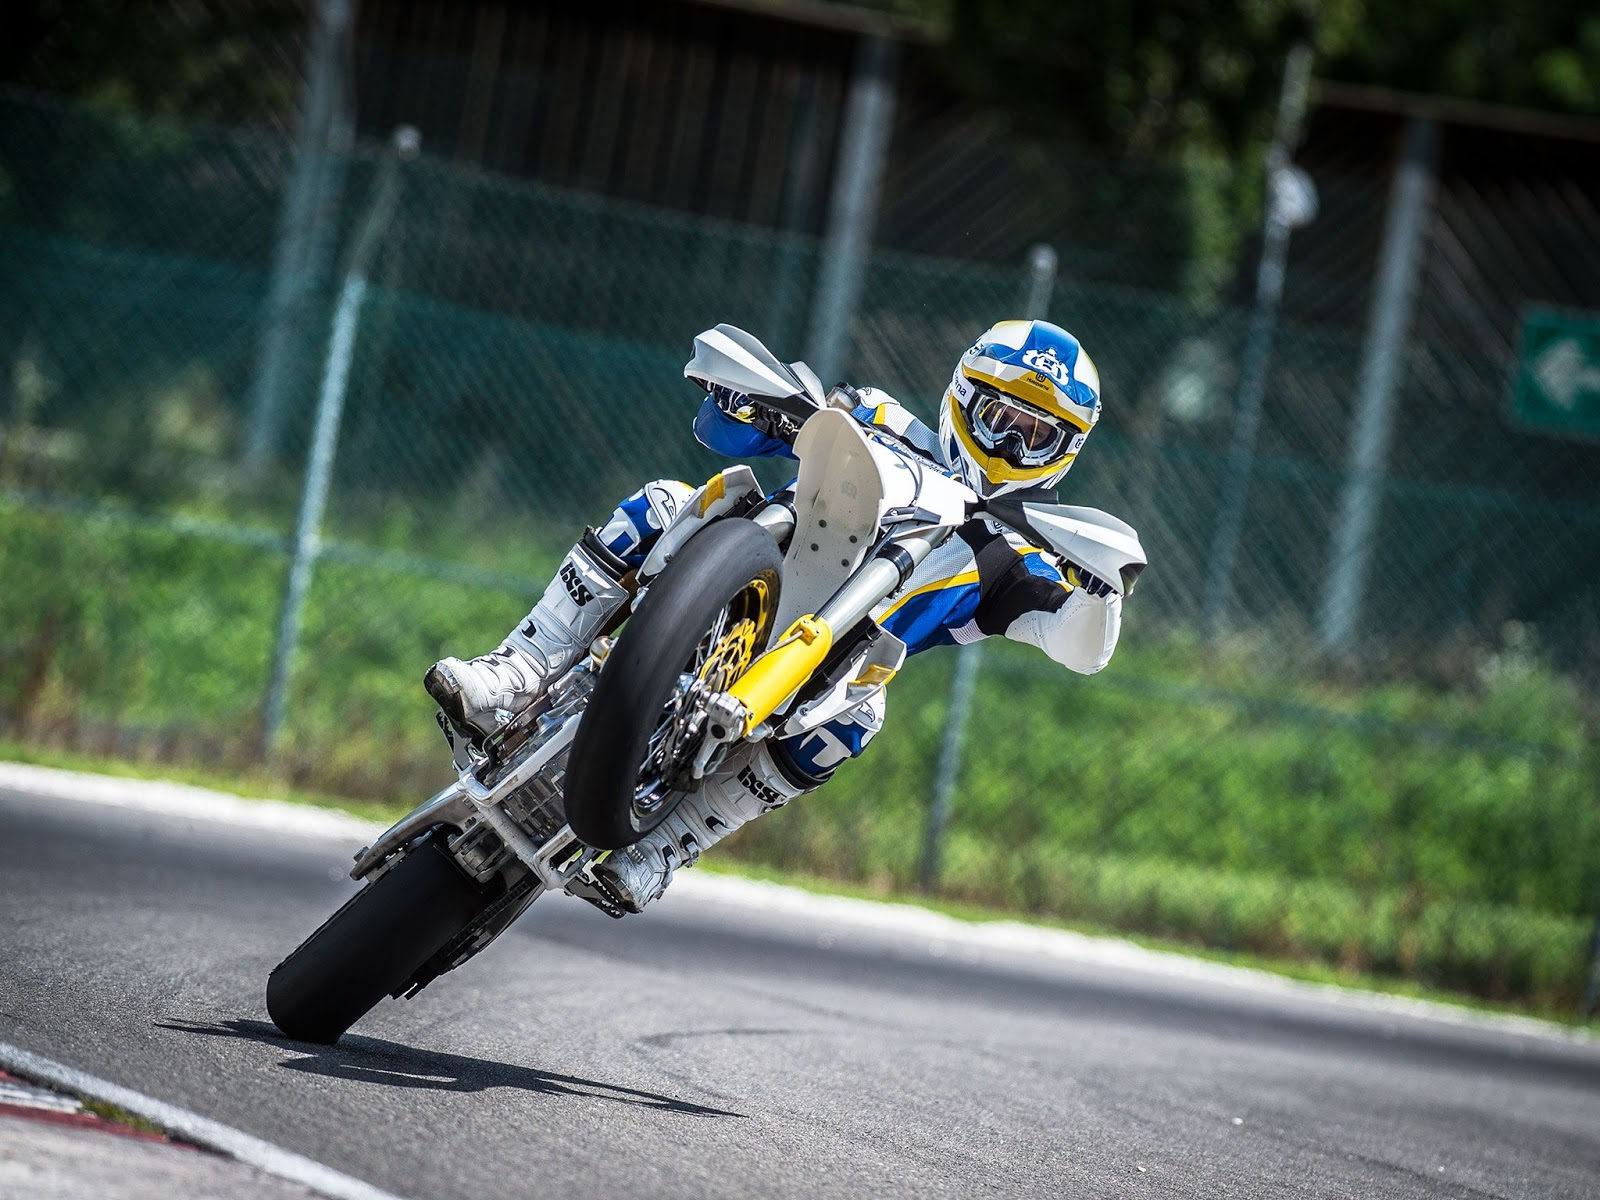 How To Convert A Dirt Bike To A Street Legal Supermoto Automoto Time